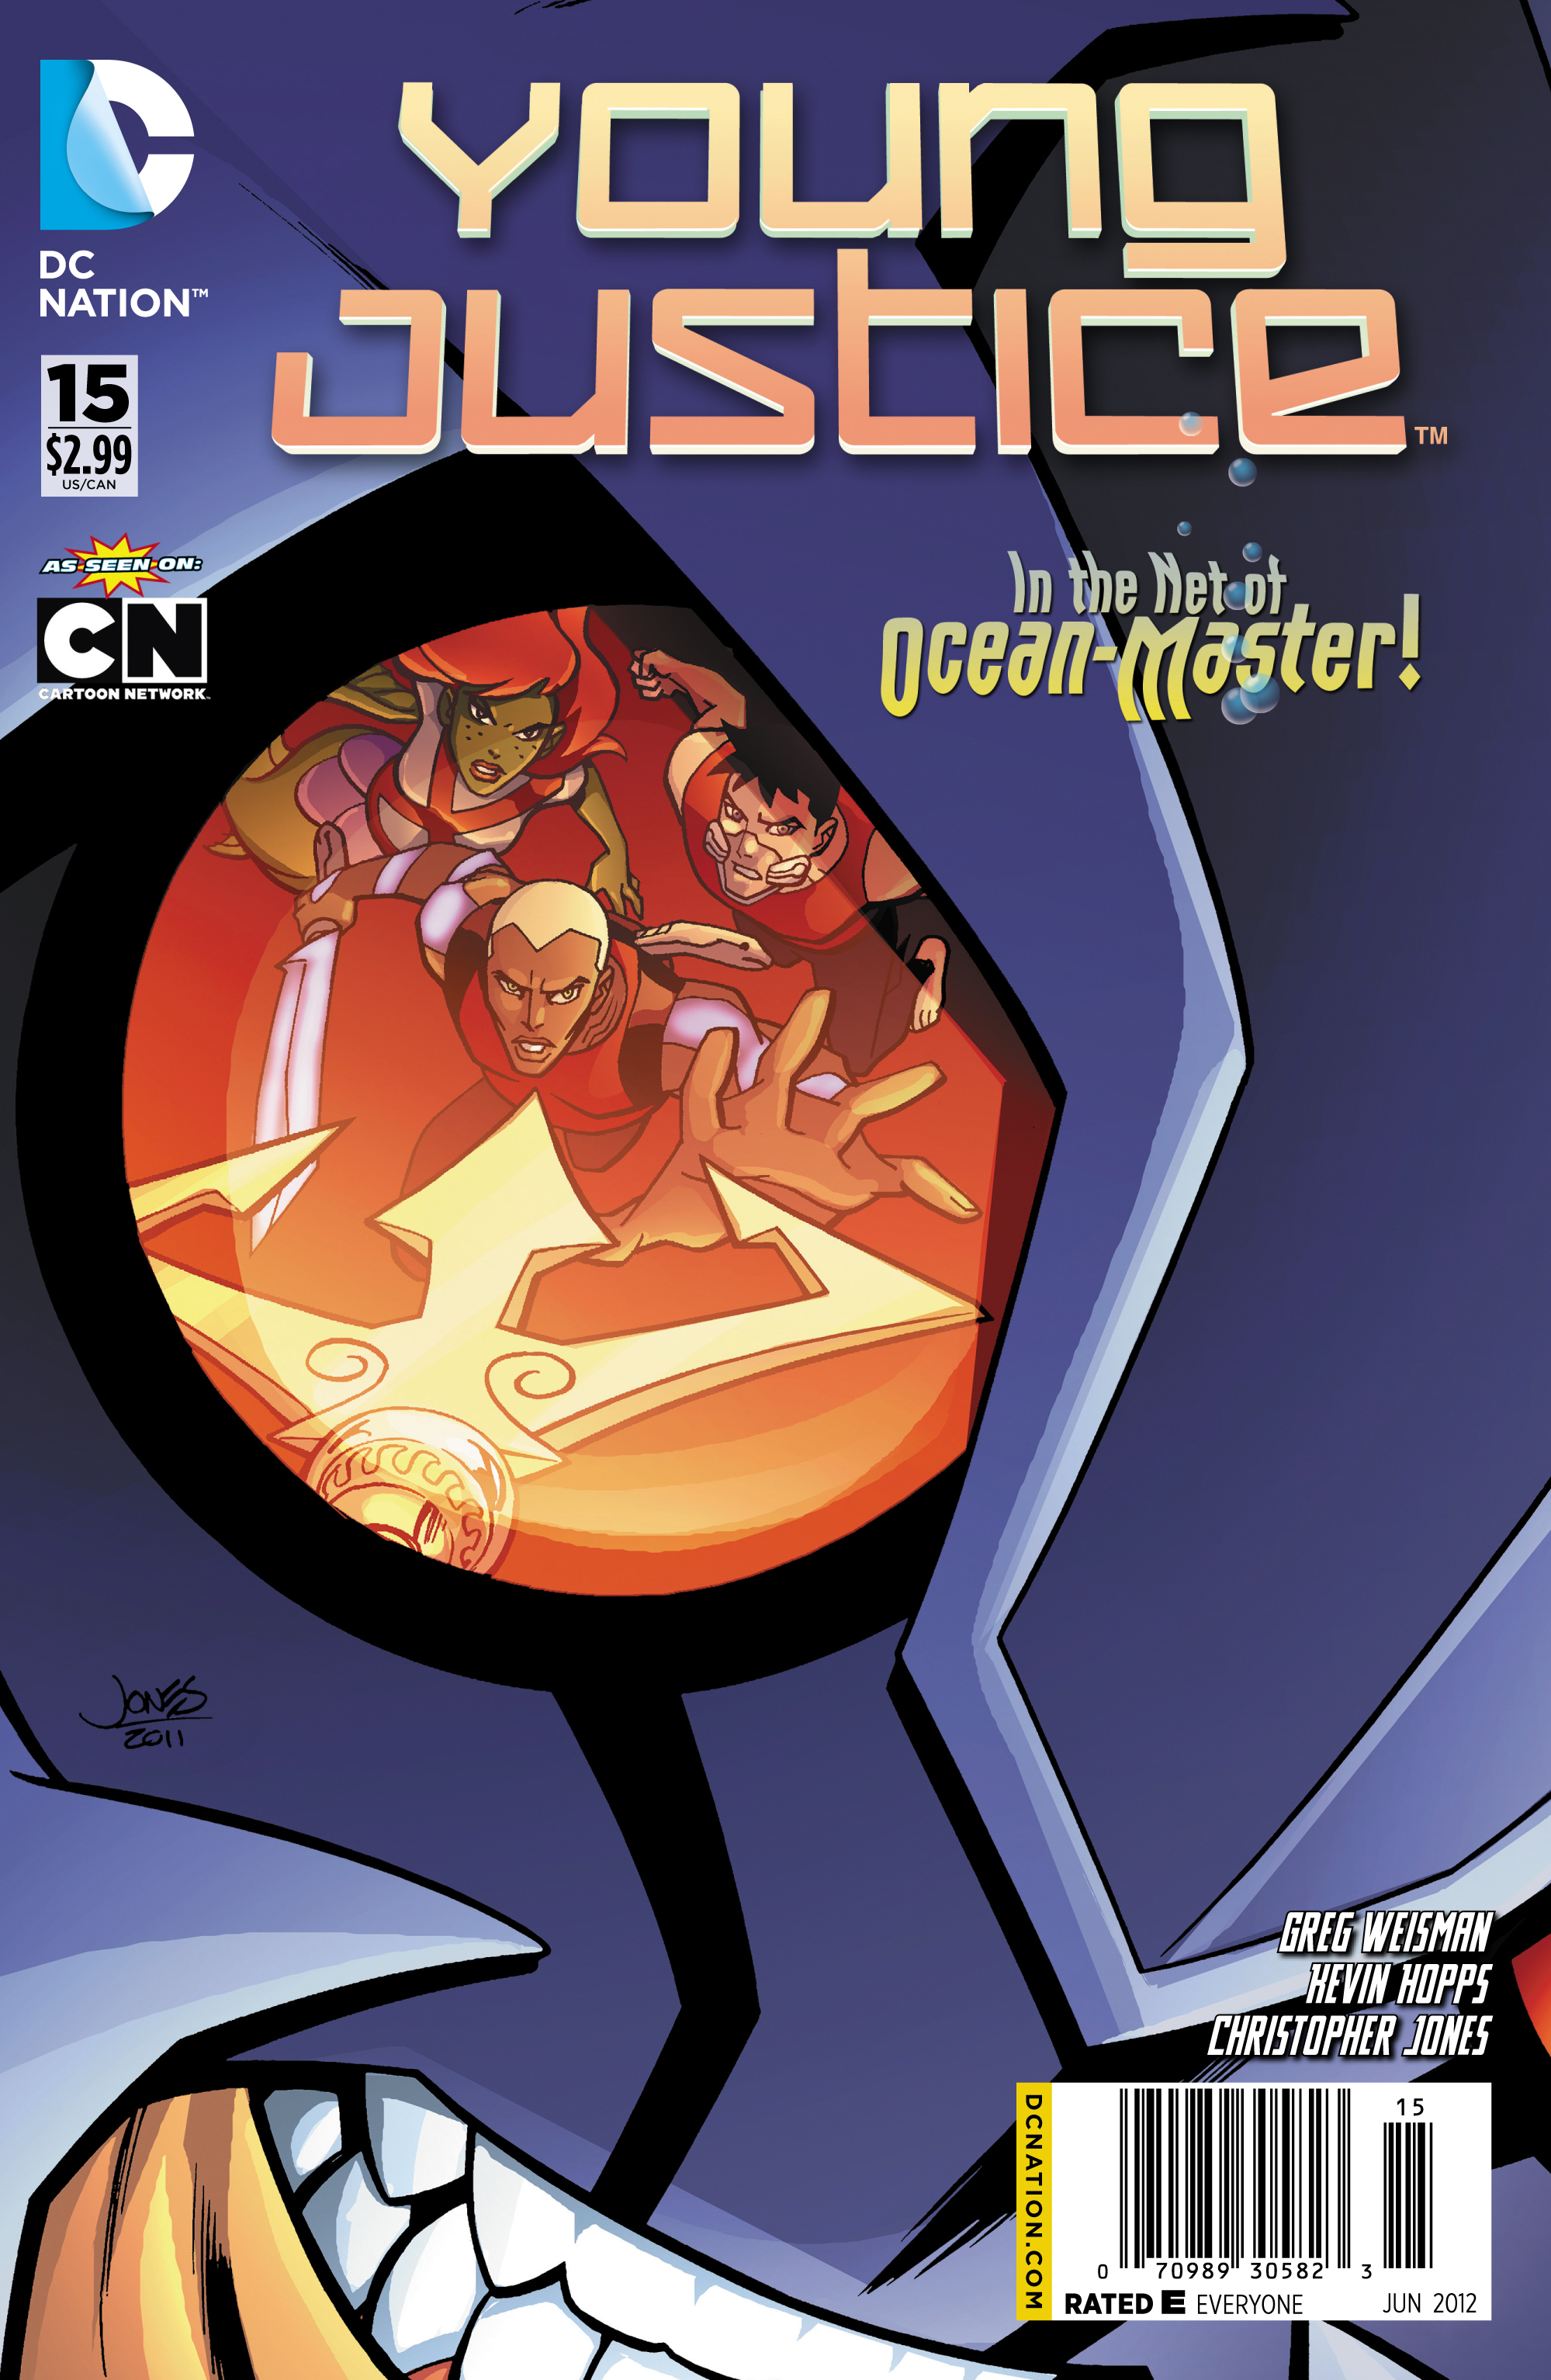 Young Justice #15 Preview arrives from DC